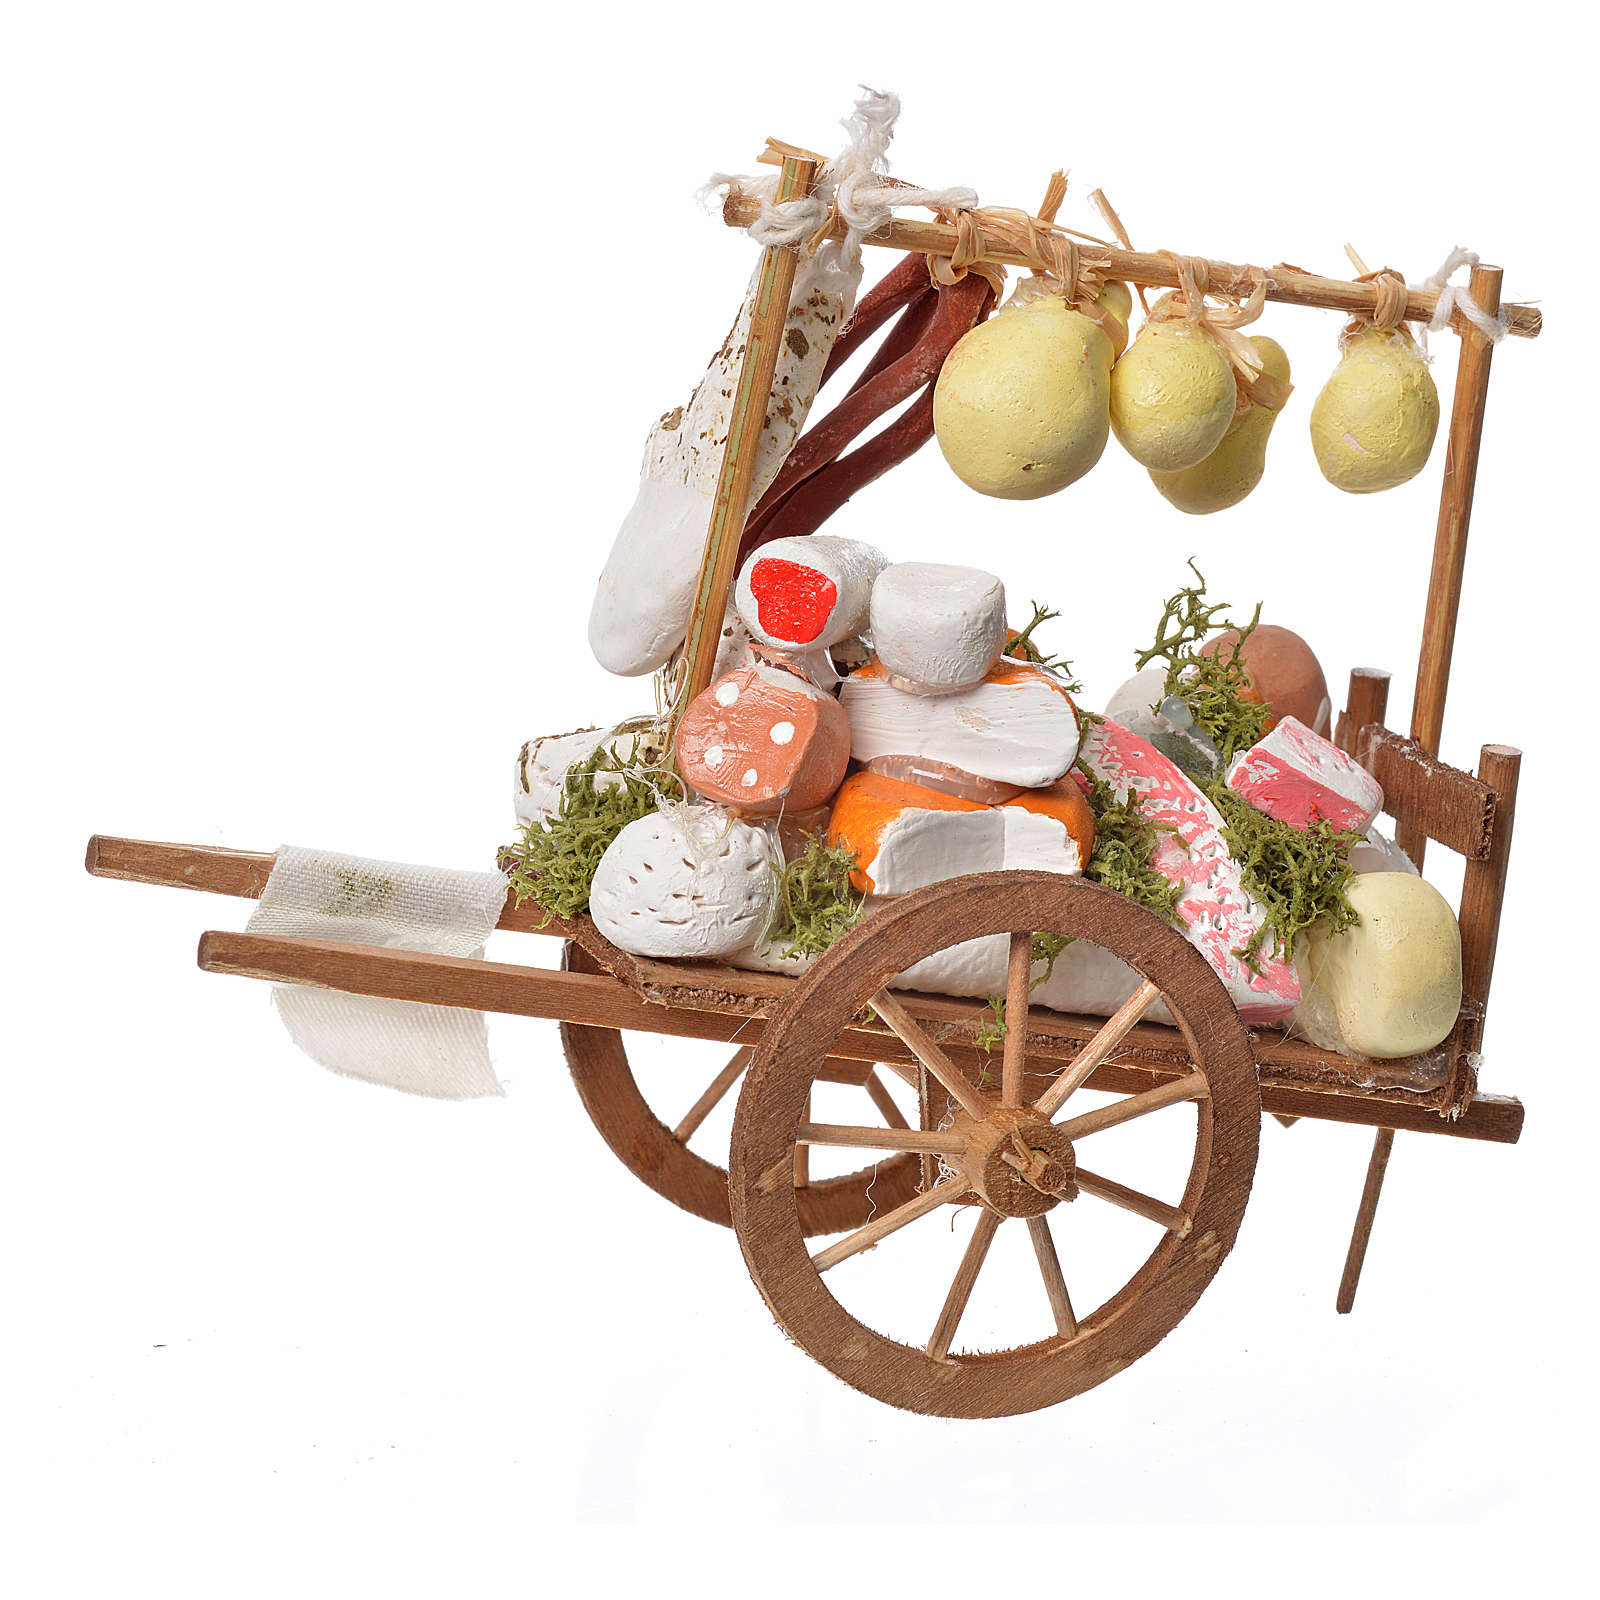 Neapolitan Nativity accessory, cheese cart in wood and terracott 4